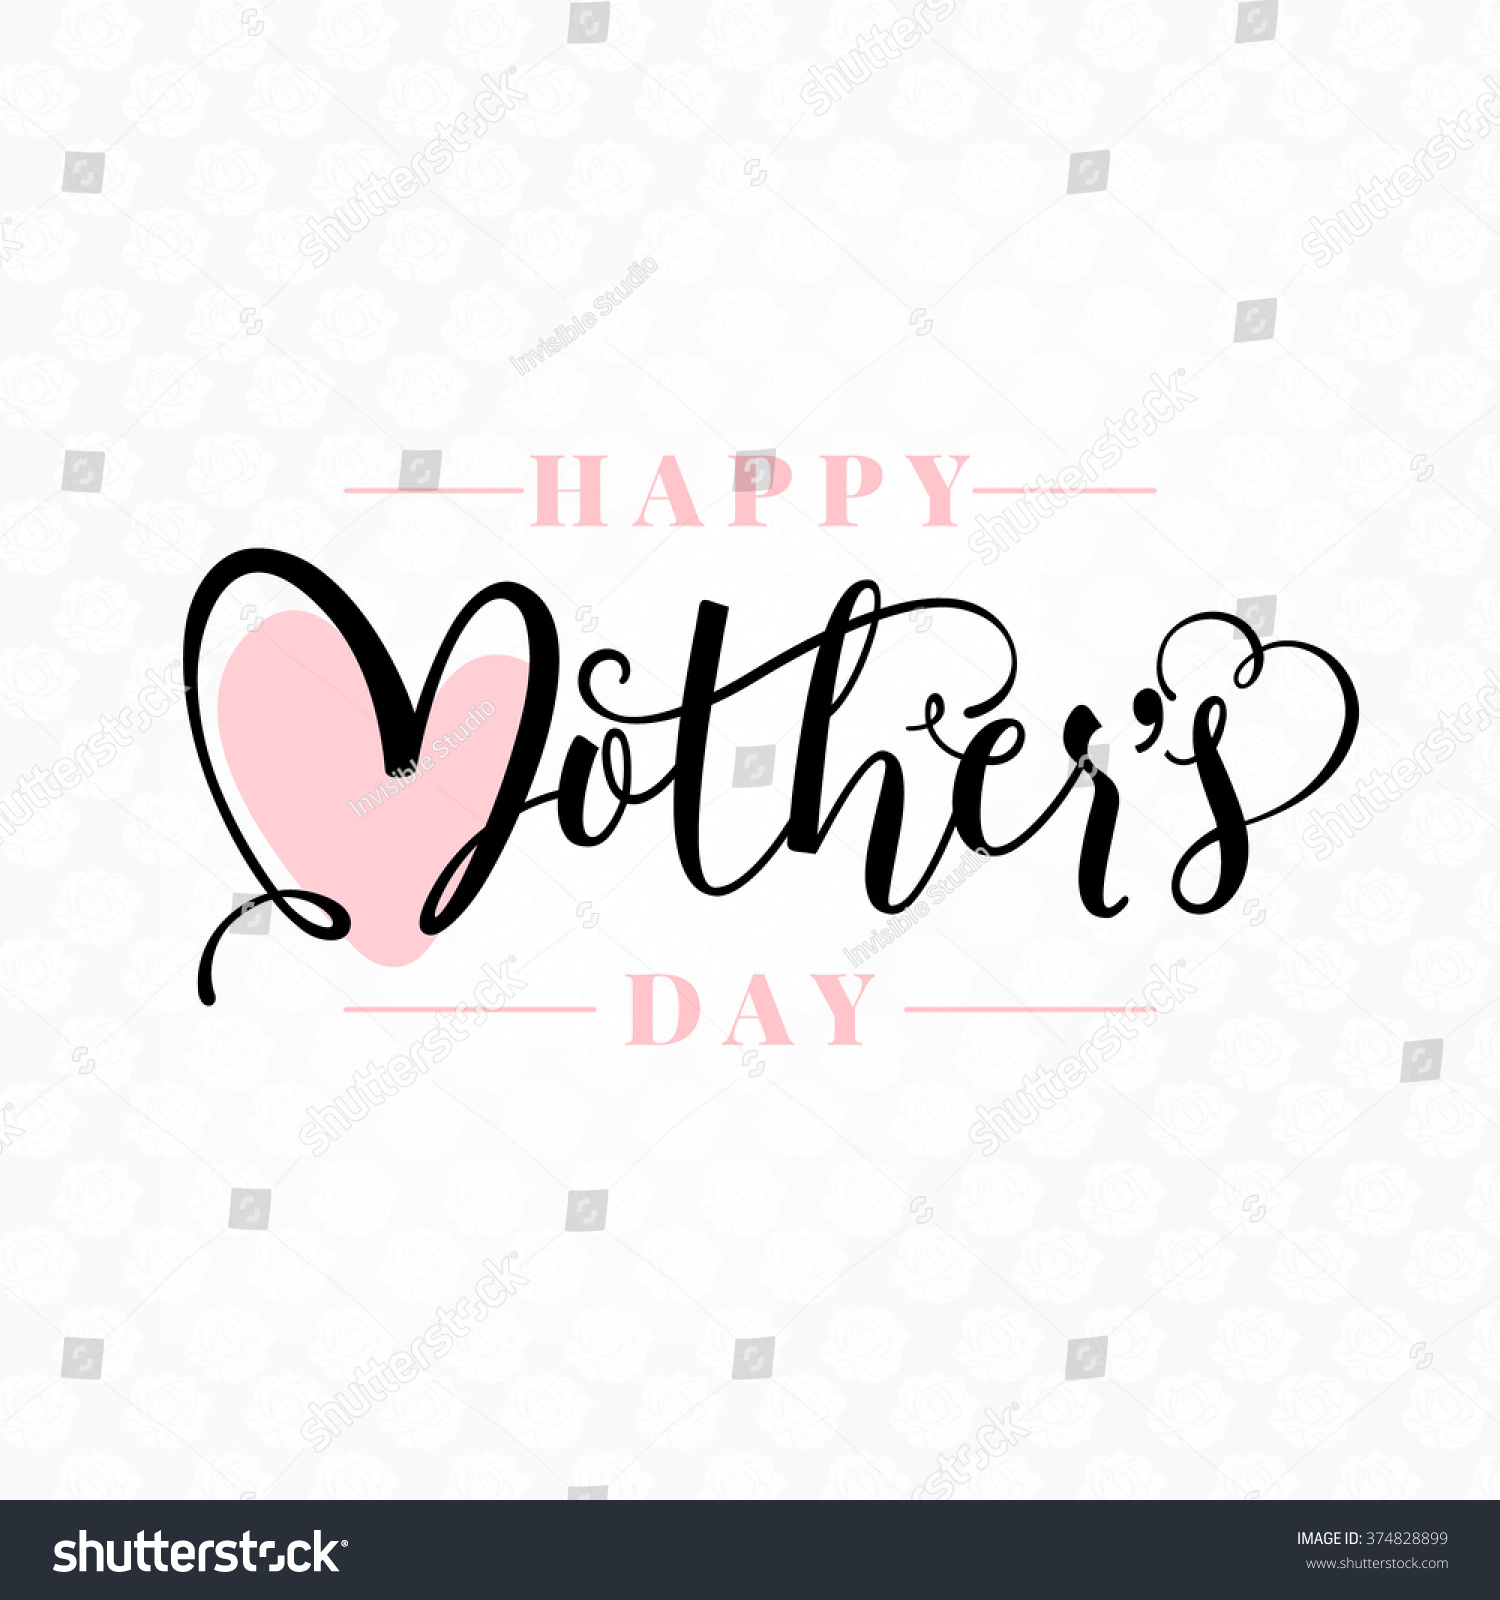 Happy mothers day calligraphy background stock vector